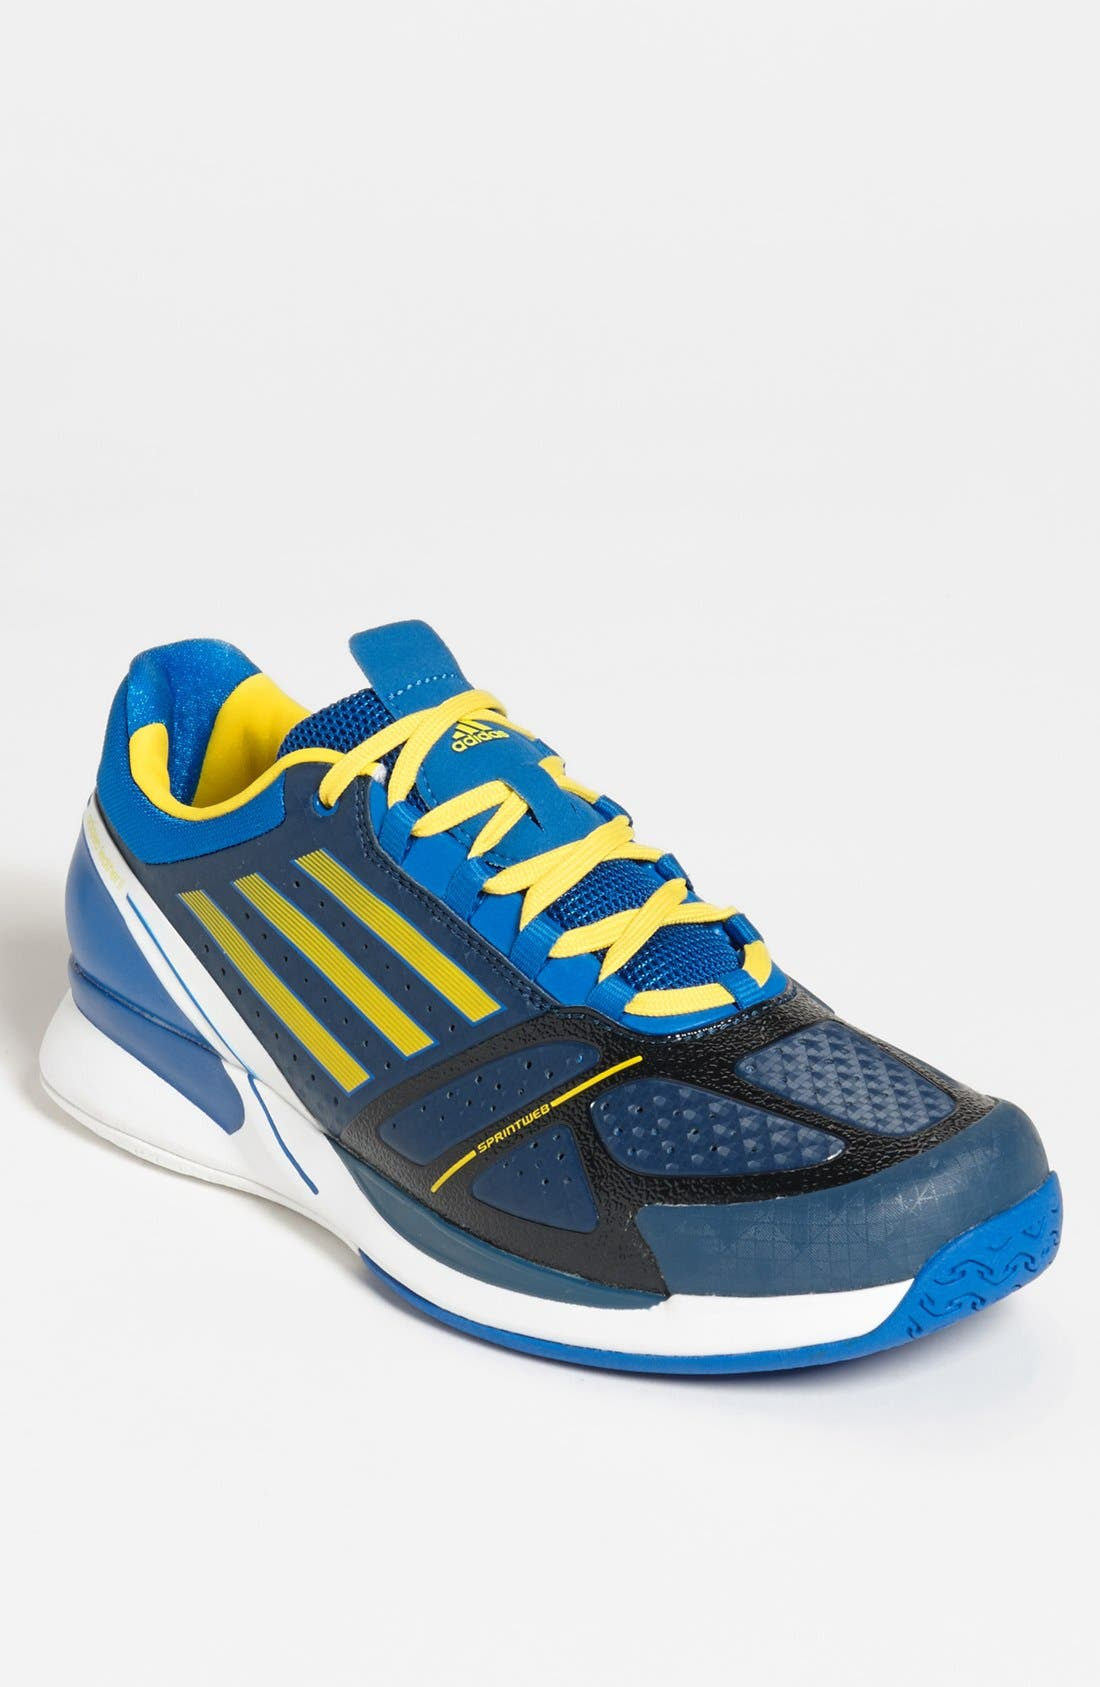 Main Image - adidas 'adizero Feather II' Tennis Shoe (Men)